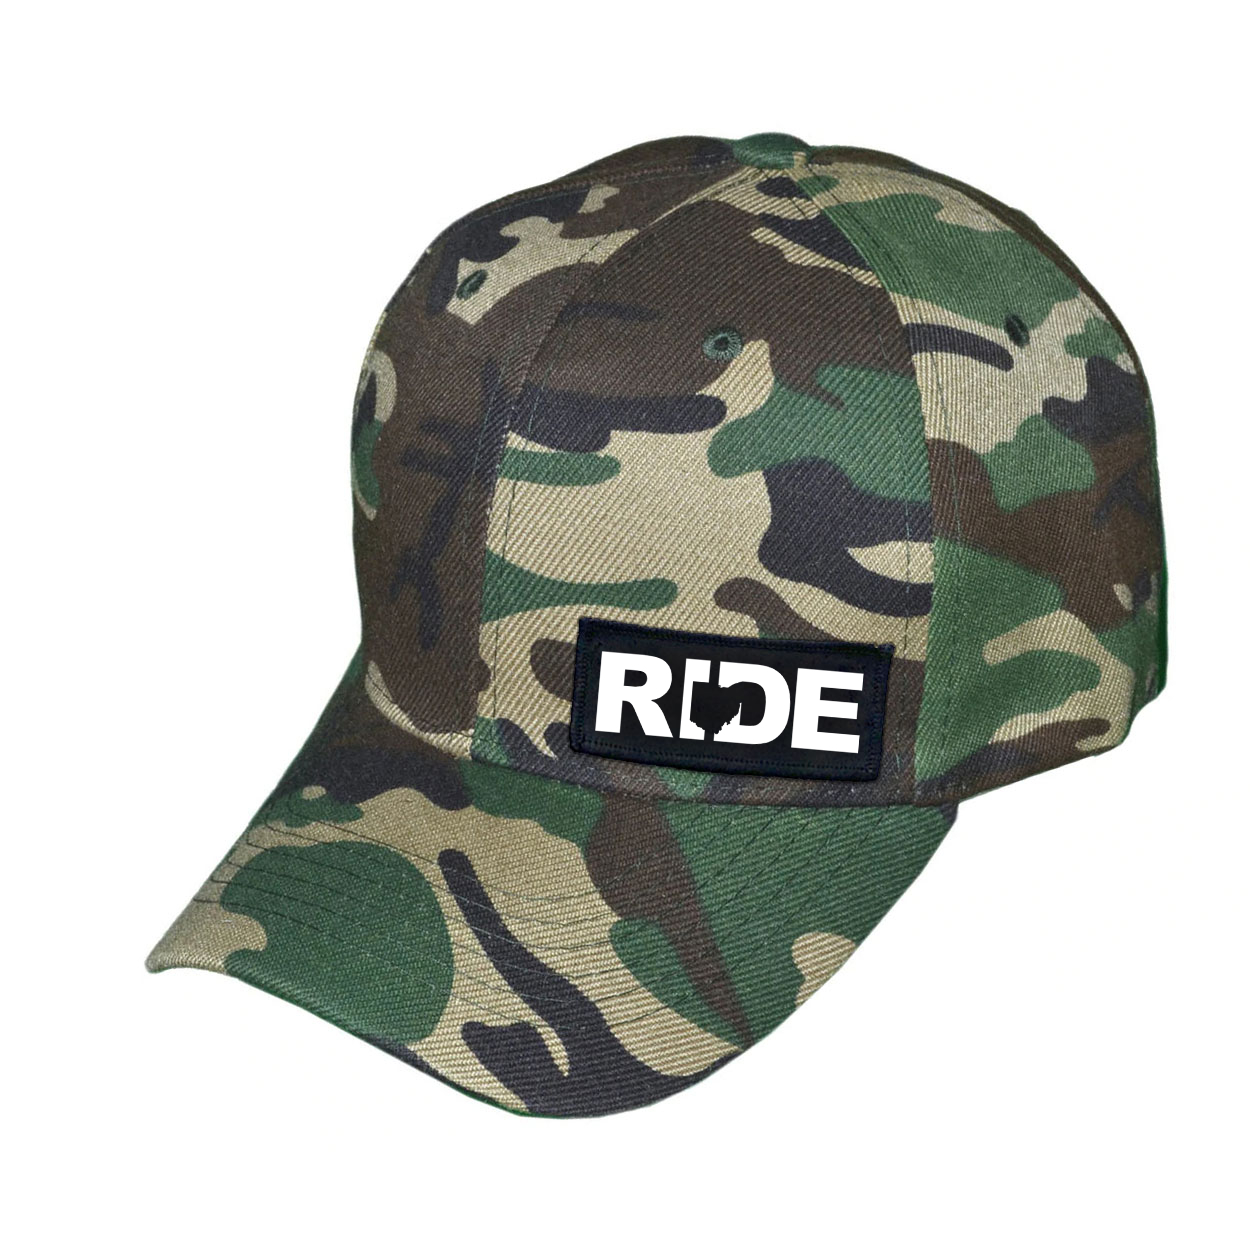 Ride Ohio Night Out Woven Patch Hat Camo (White Logo)